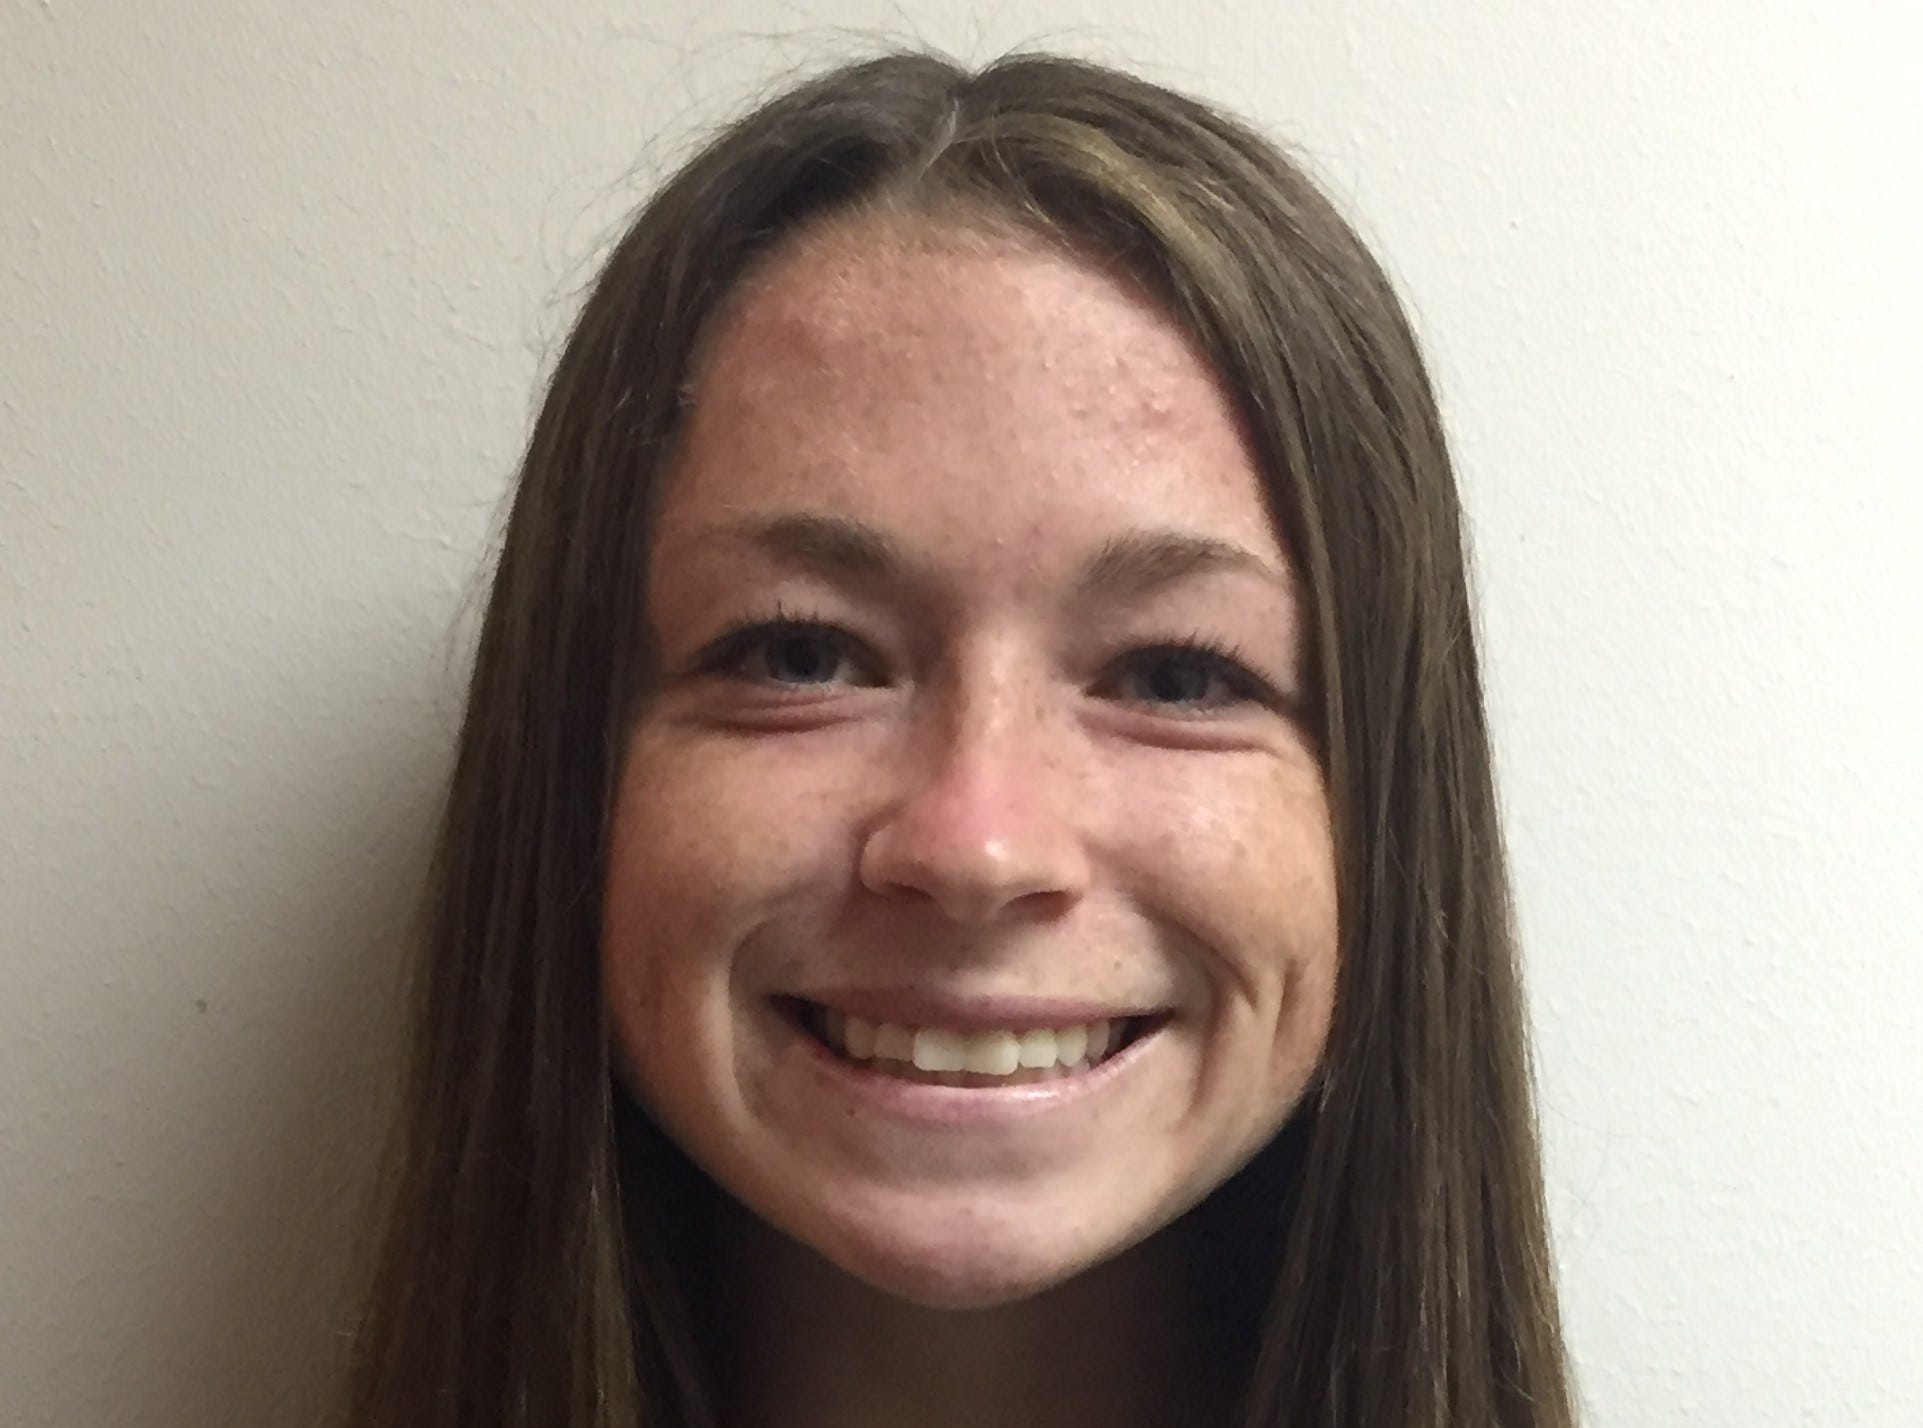 "CASSIDY HUBERT, Ventura: Whether she has been whipping crosses or bombarding the area with long throws, the 5-foot-8 winger has been the playmaker of the Cougars' high-scoring attack for two years. As a senior, Hubert led Ventura County with 23 assists. The first-team All-Pacific View League selection also scored 17 goals, including a highlight-reel strike against Glendora in the Division 2 playoffs. She's also a key part of the Ventura girls track team, running the 400 and 800 meters. Hubert enjoys running and going to the beach. She watches ""Friends"" and eats fruit and sweet potatoes. She roots for the U.S. women's national team. Megan Rapinoe is her favorite athlete."